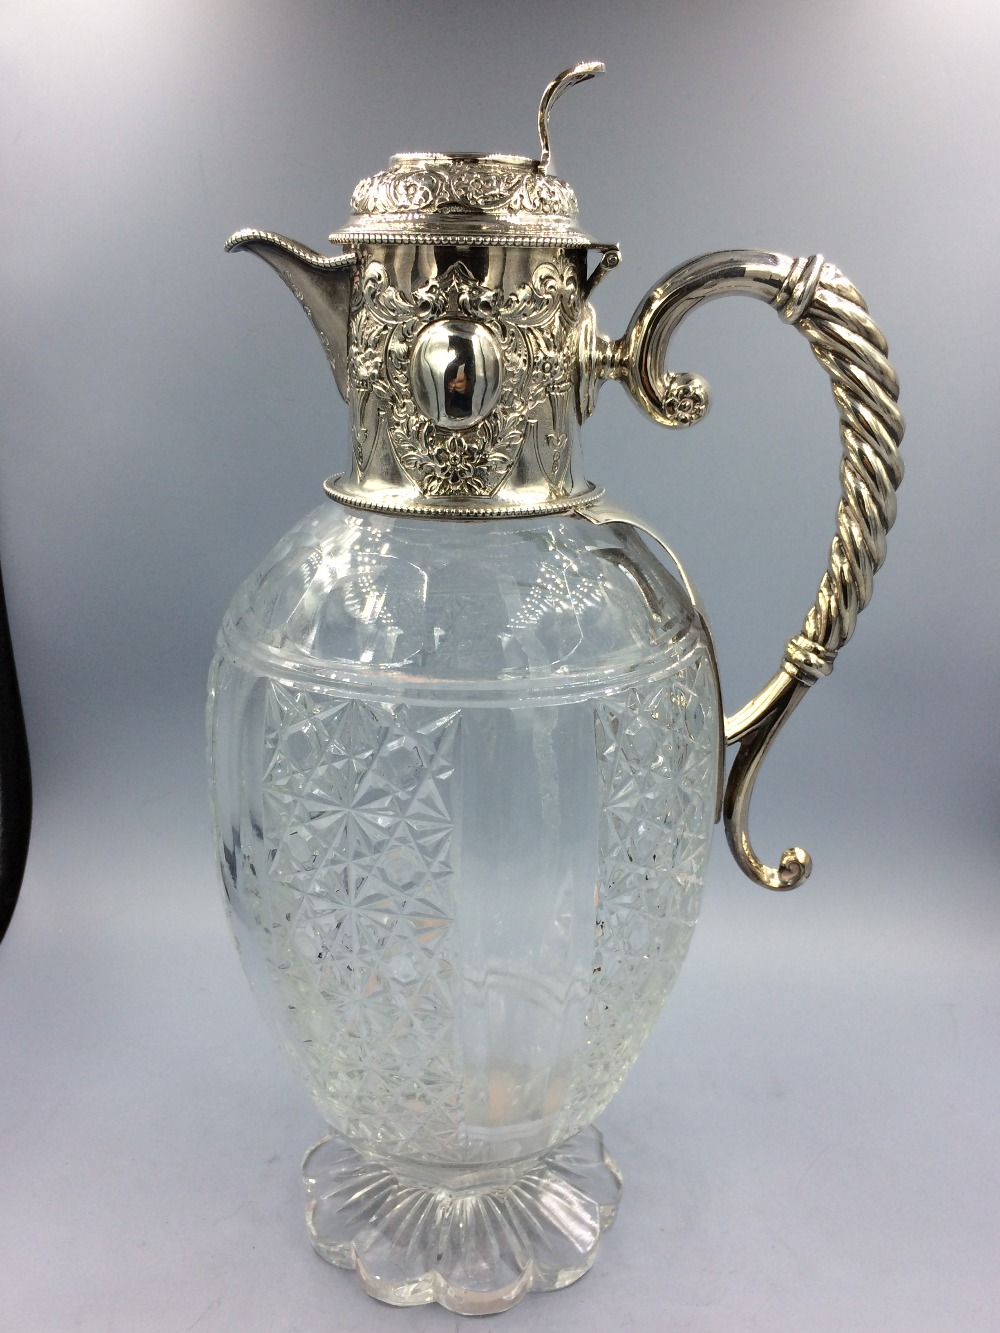 Lot 967 - Victorian silver mounted cut glass claret jug William & G Sissons Sheffield 1887